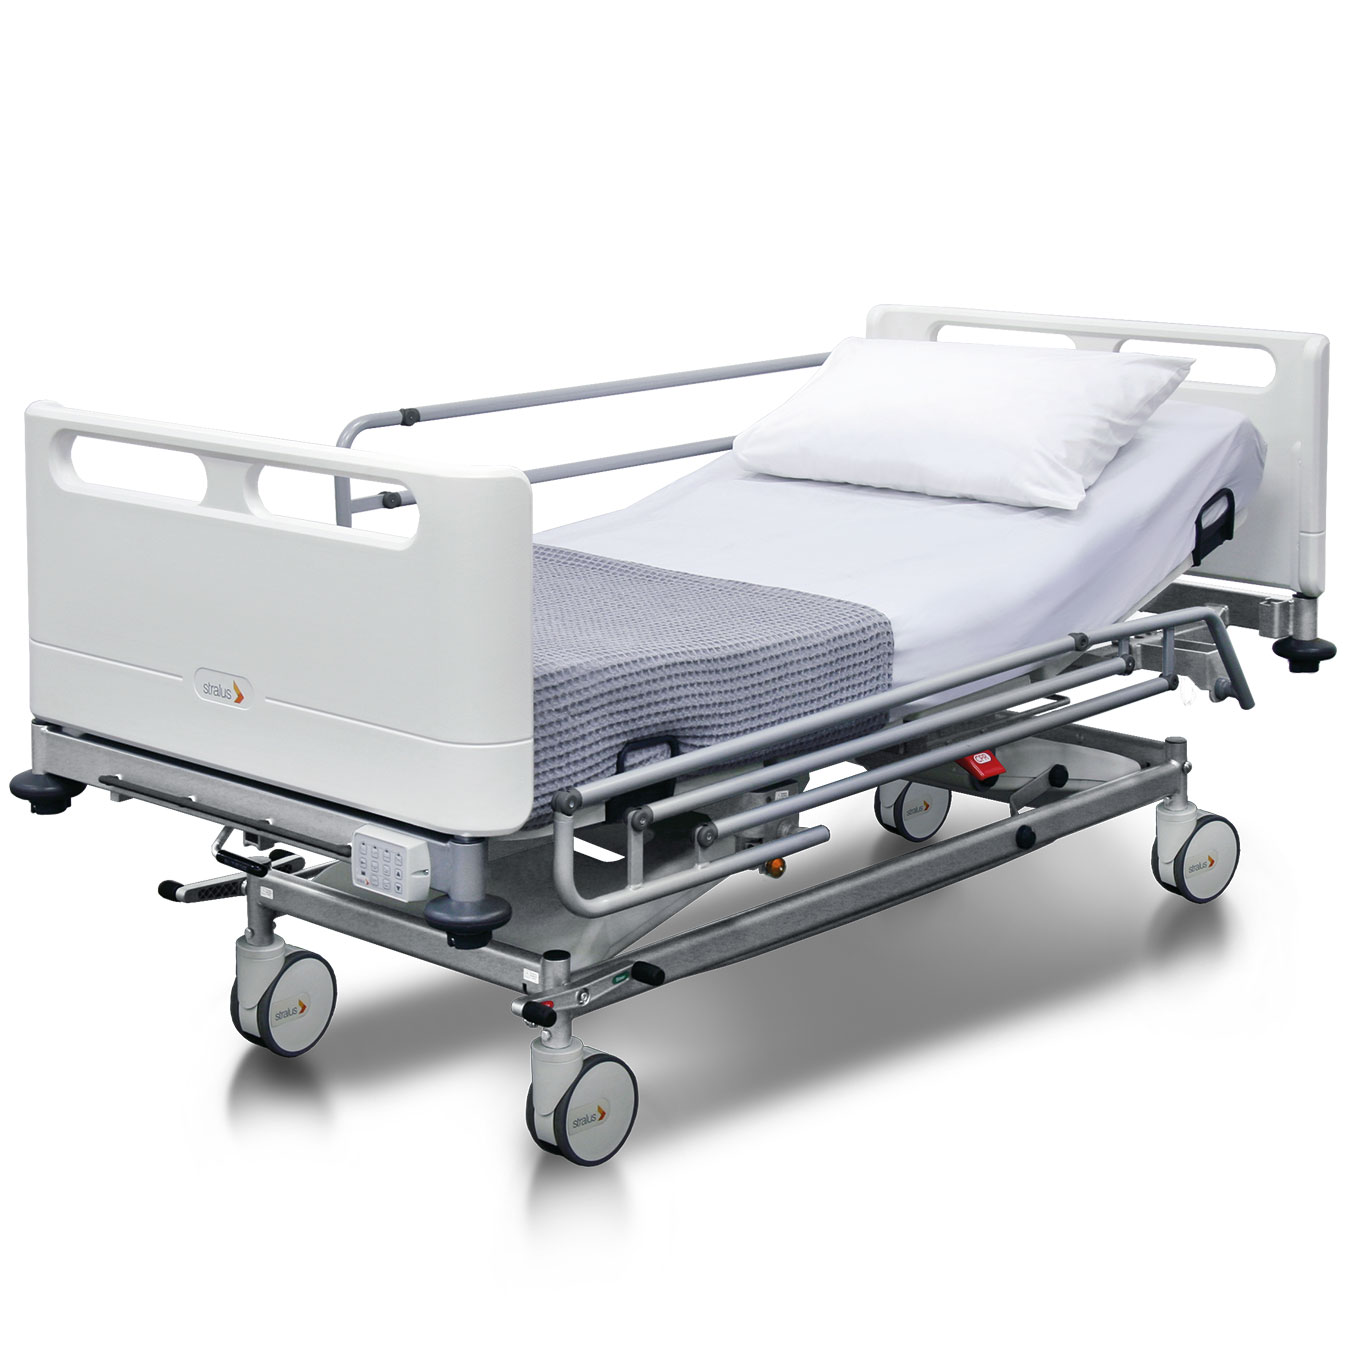 STRWARDC210-Stralus-C210-Acute-Care-Bed-Image-File-2a_v1